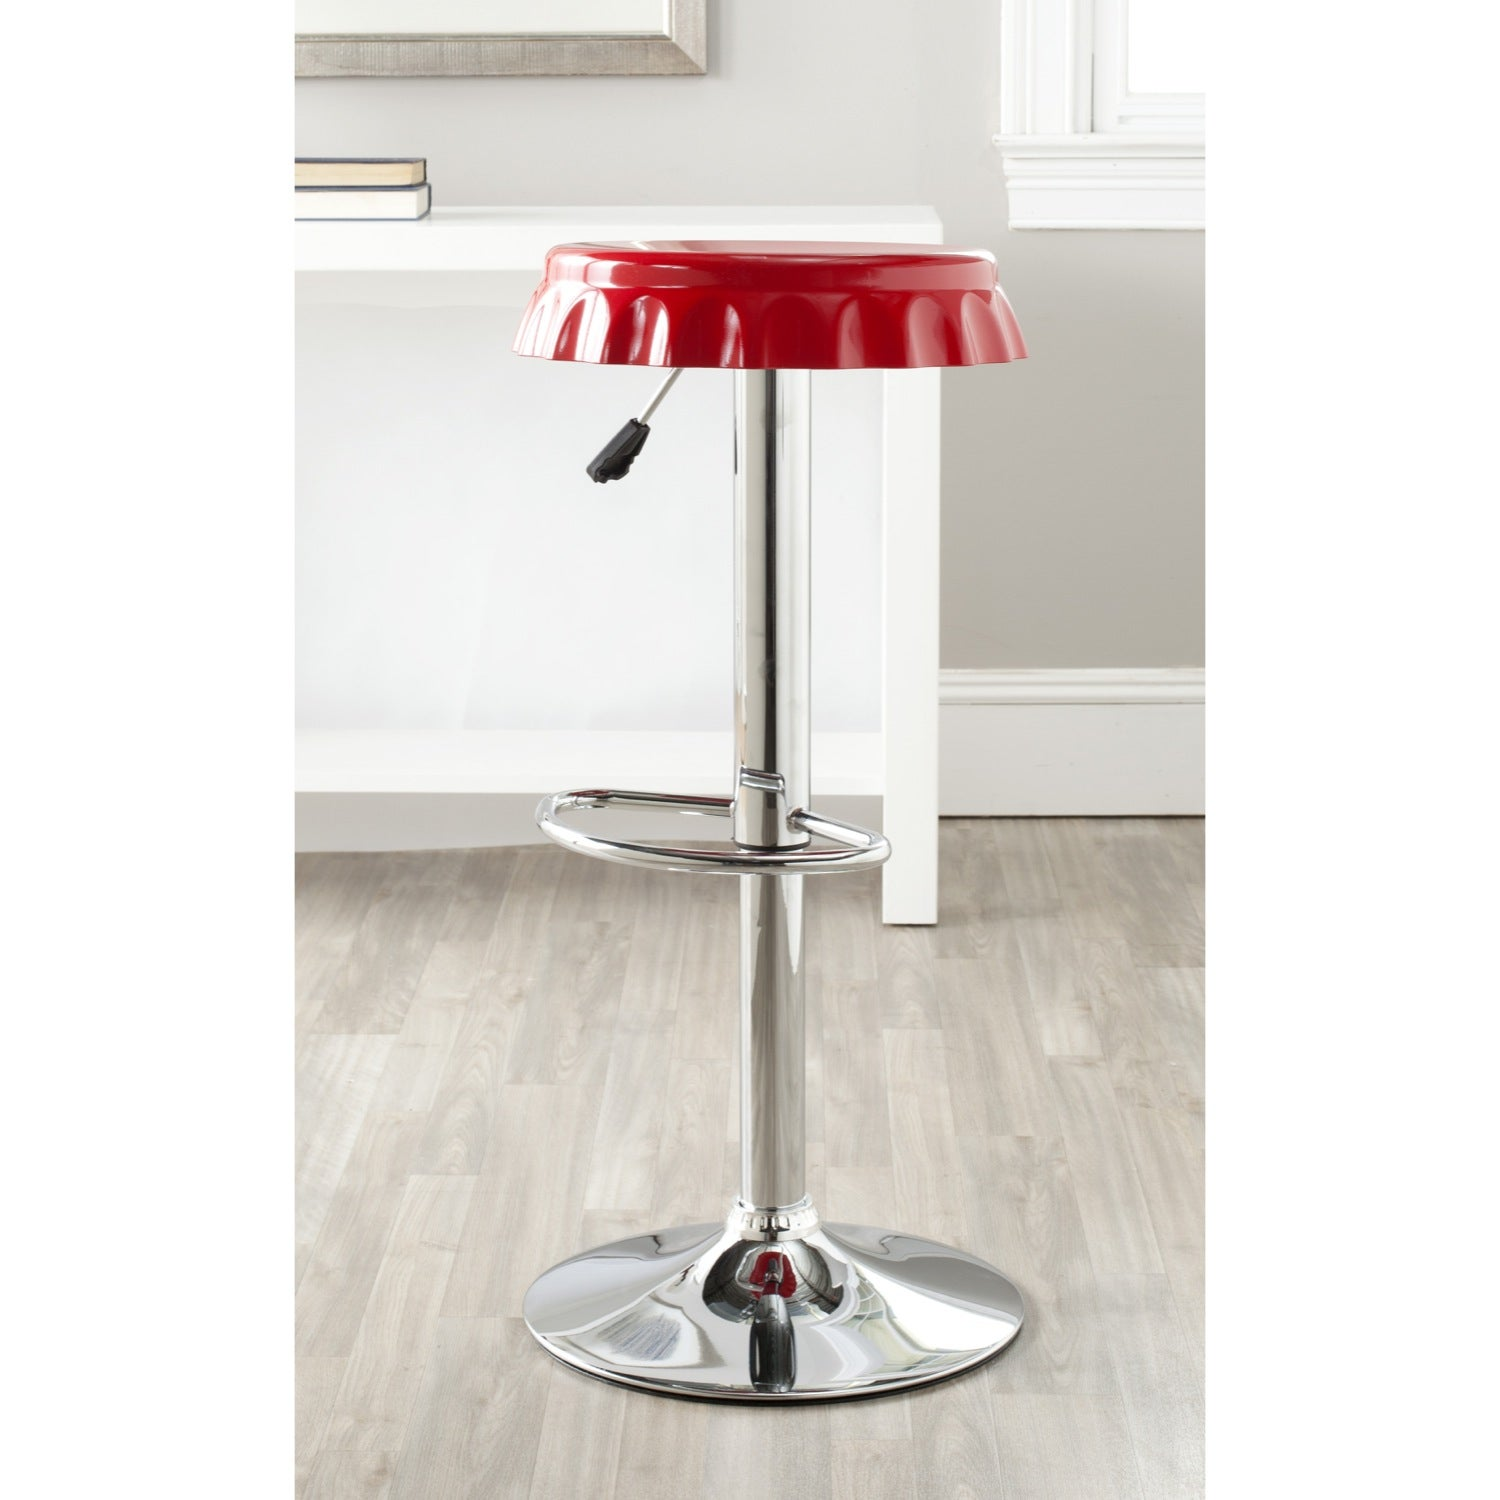 Safavieh Bunky Red Adjustable Height Swivel Bar Stool at Sears.com